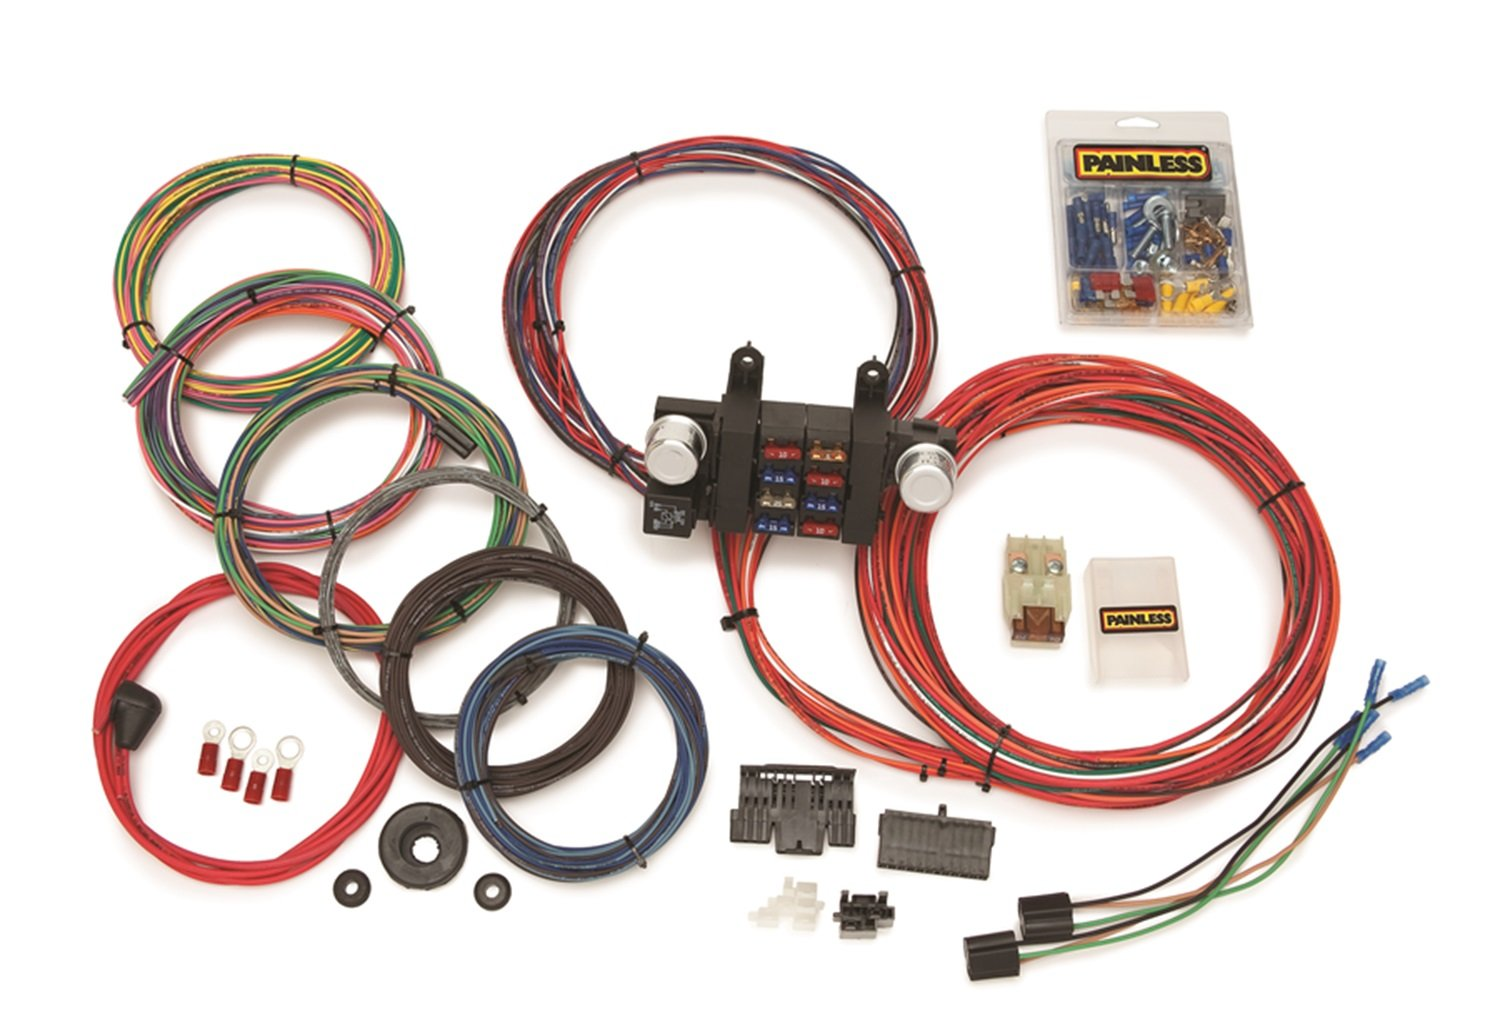 Painless 10307 8 Circuit Universal Modular Harness Wiring And Chassis Automotive